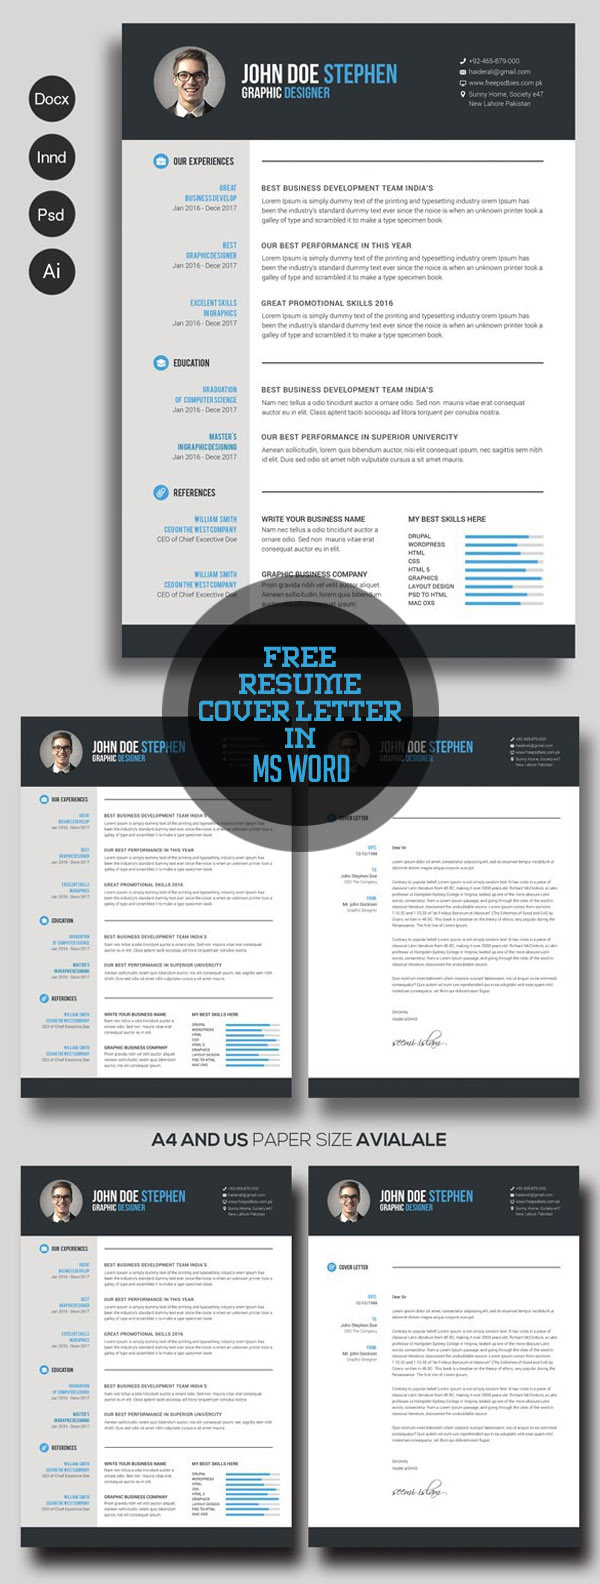 cv resume templates bies graphic design resume cover letter in ms word